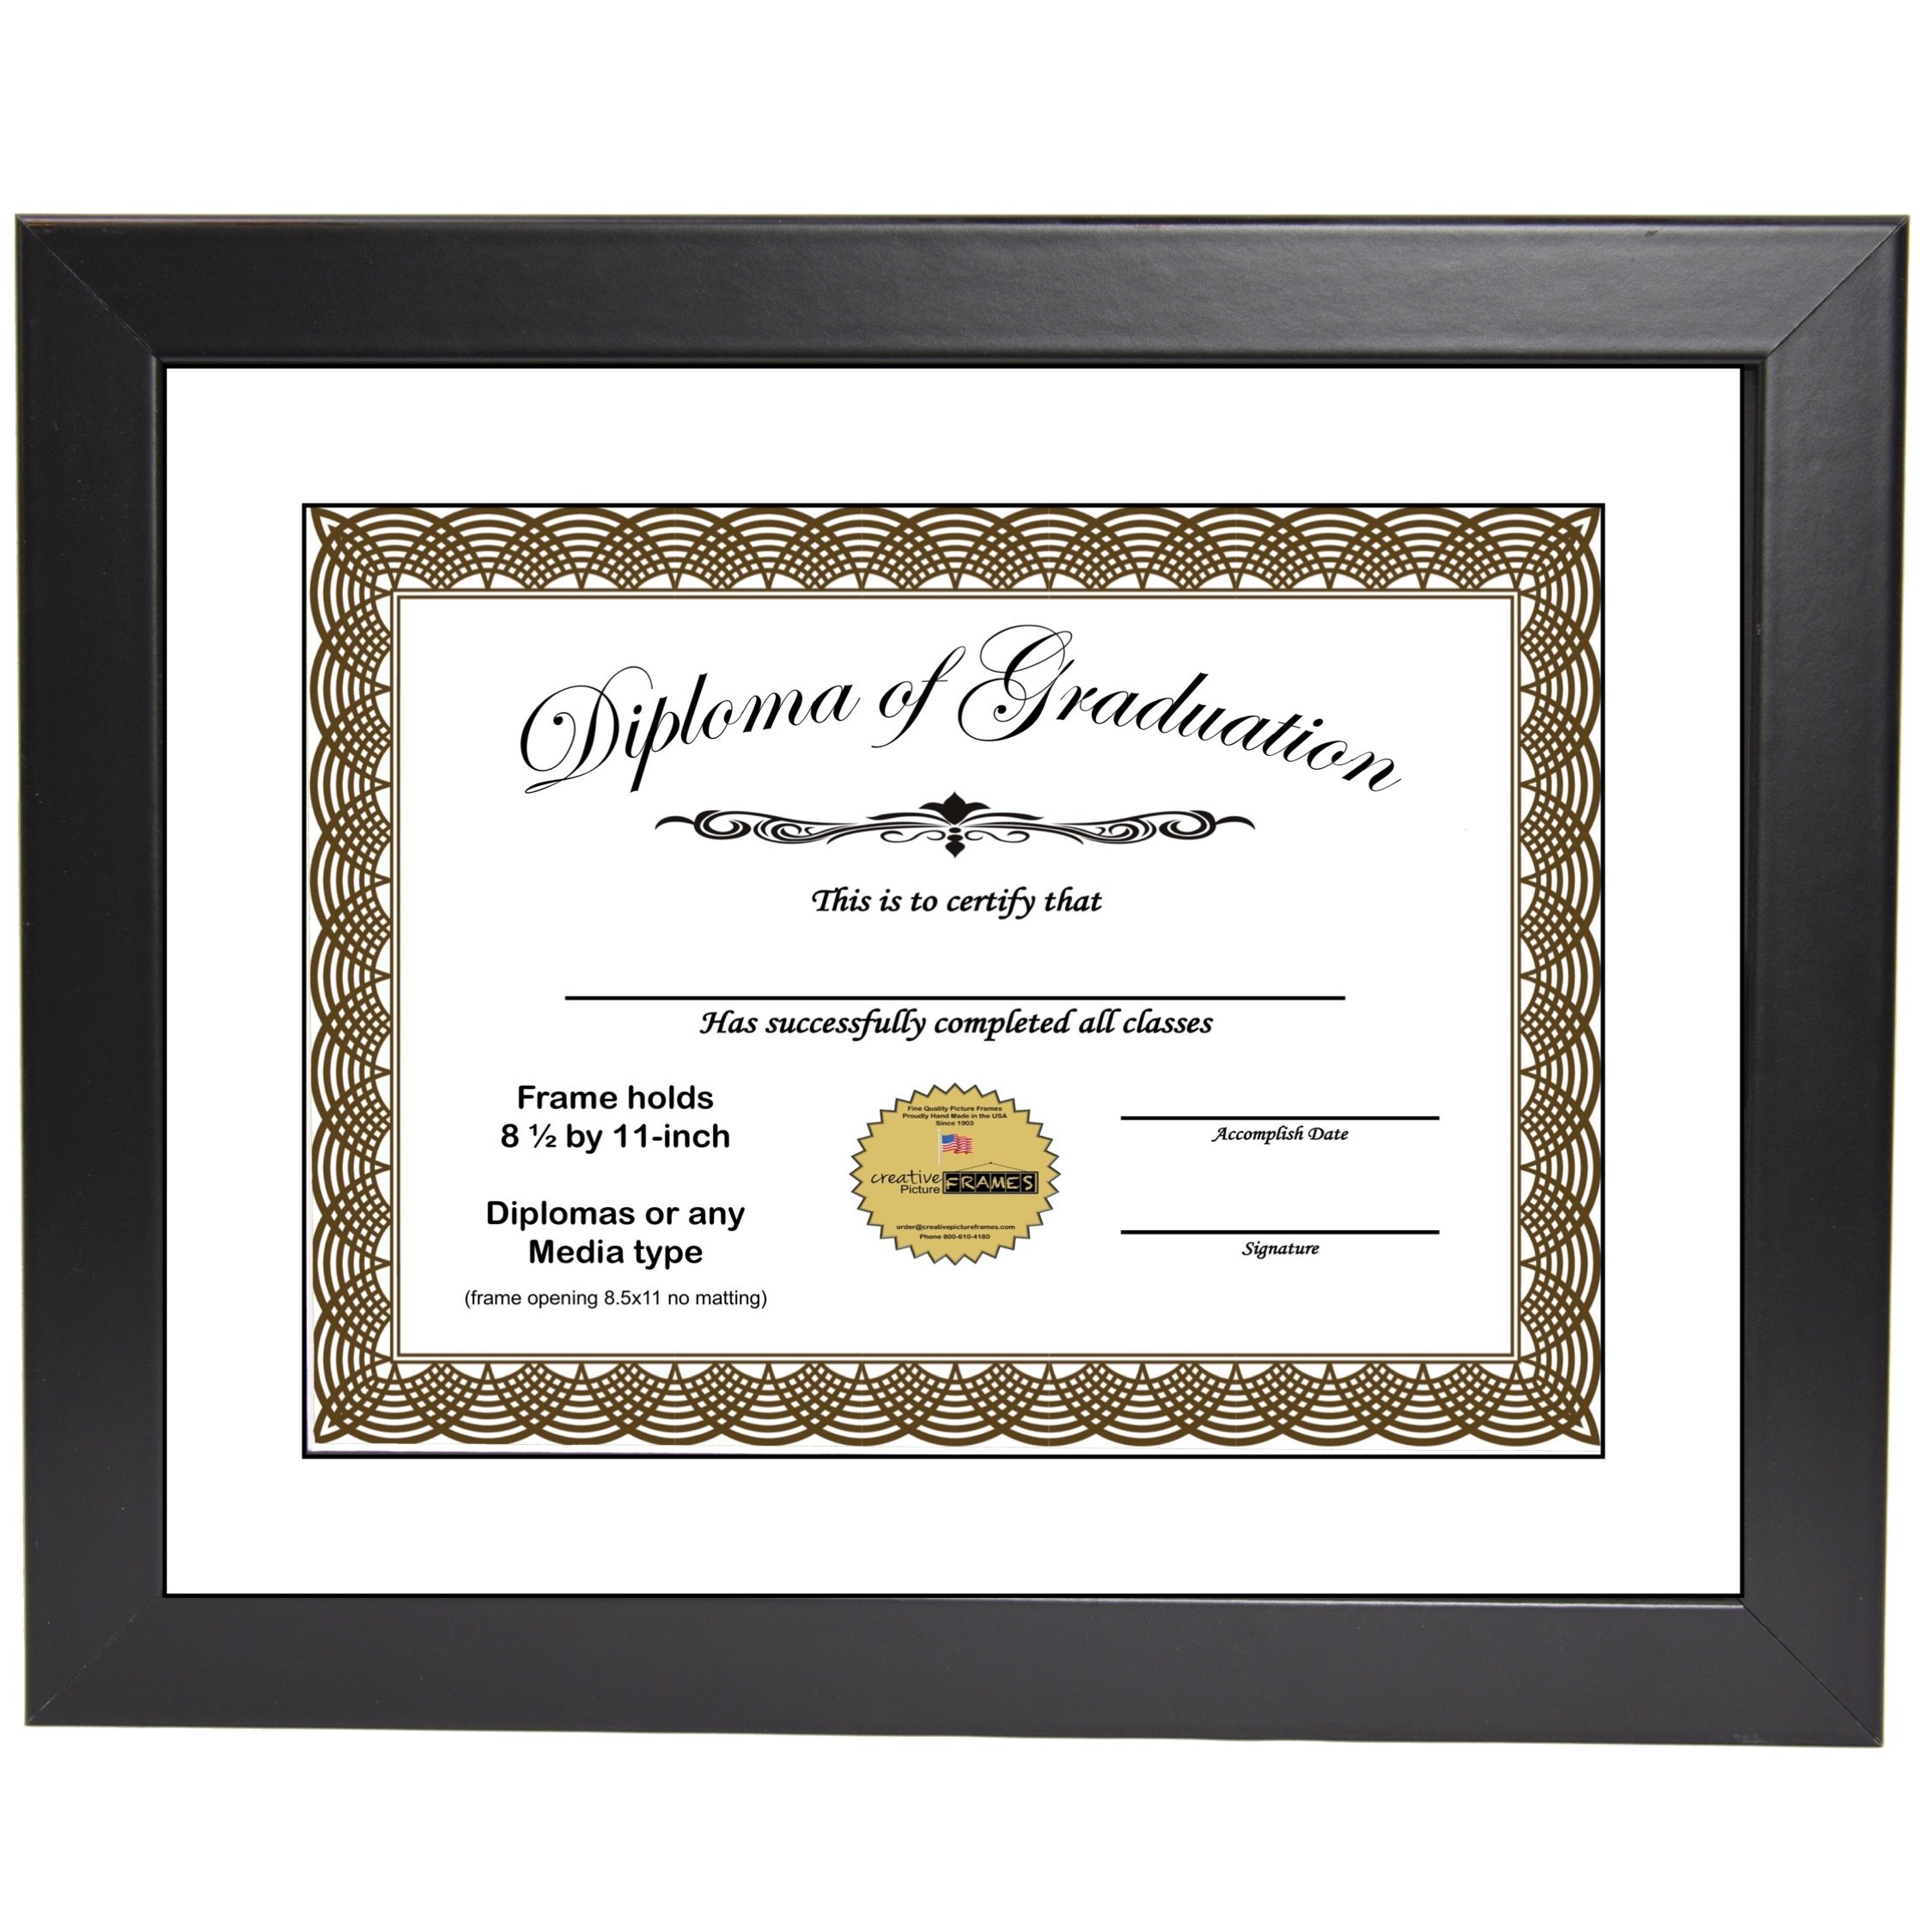 CreativePF [11x14bk] Black Diploma Frame with 11x14-inch White Mat to Hold 8.5 by 11-inch Graduation Documents w/Stand and Wall Hanger (White Mat-Black Frame, 1)